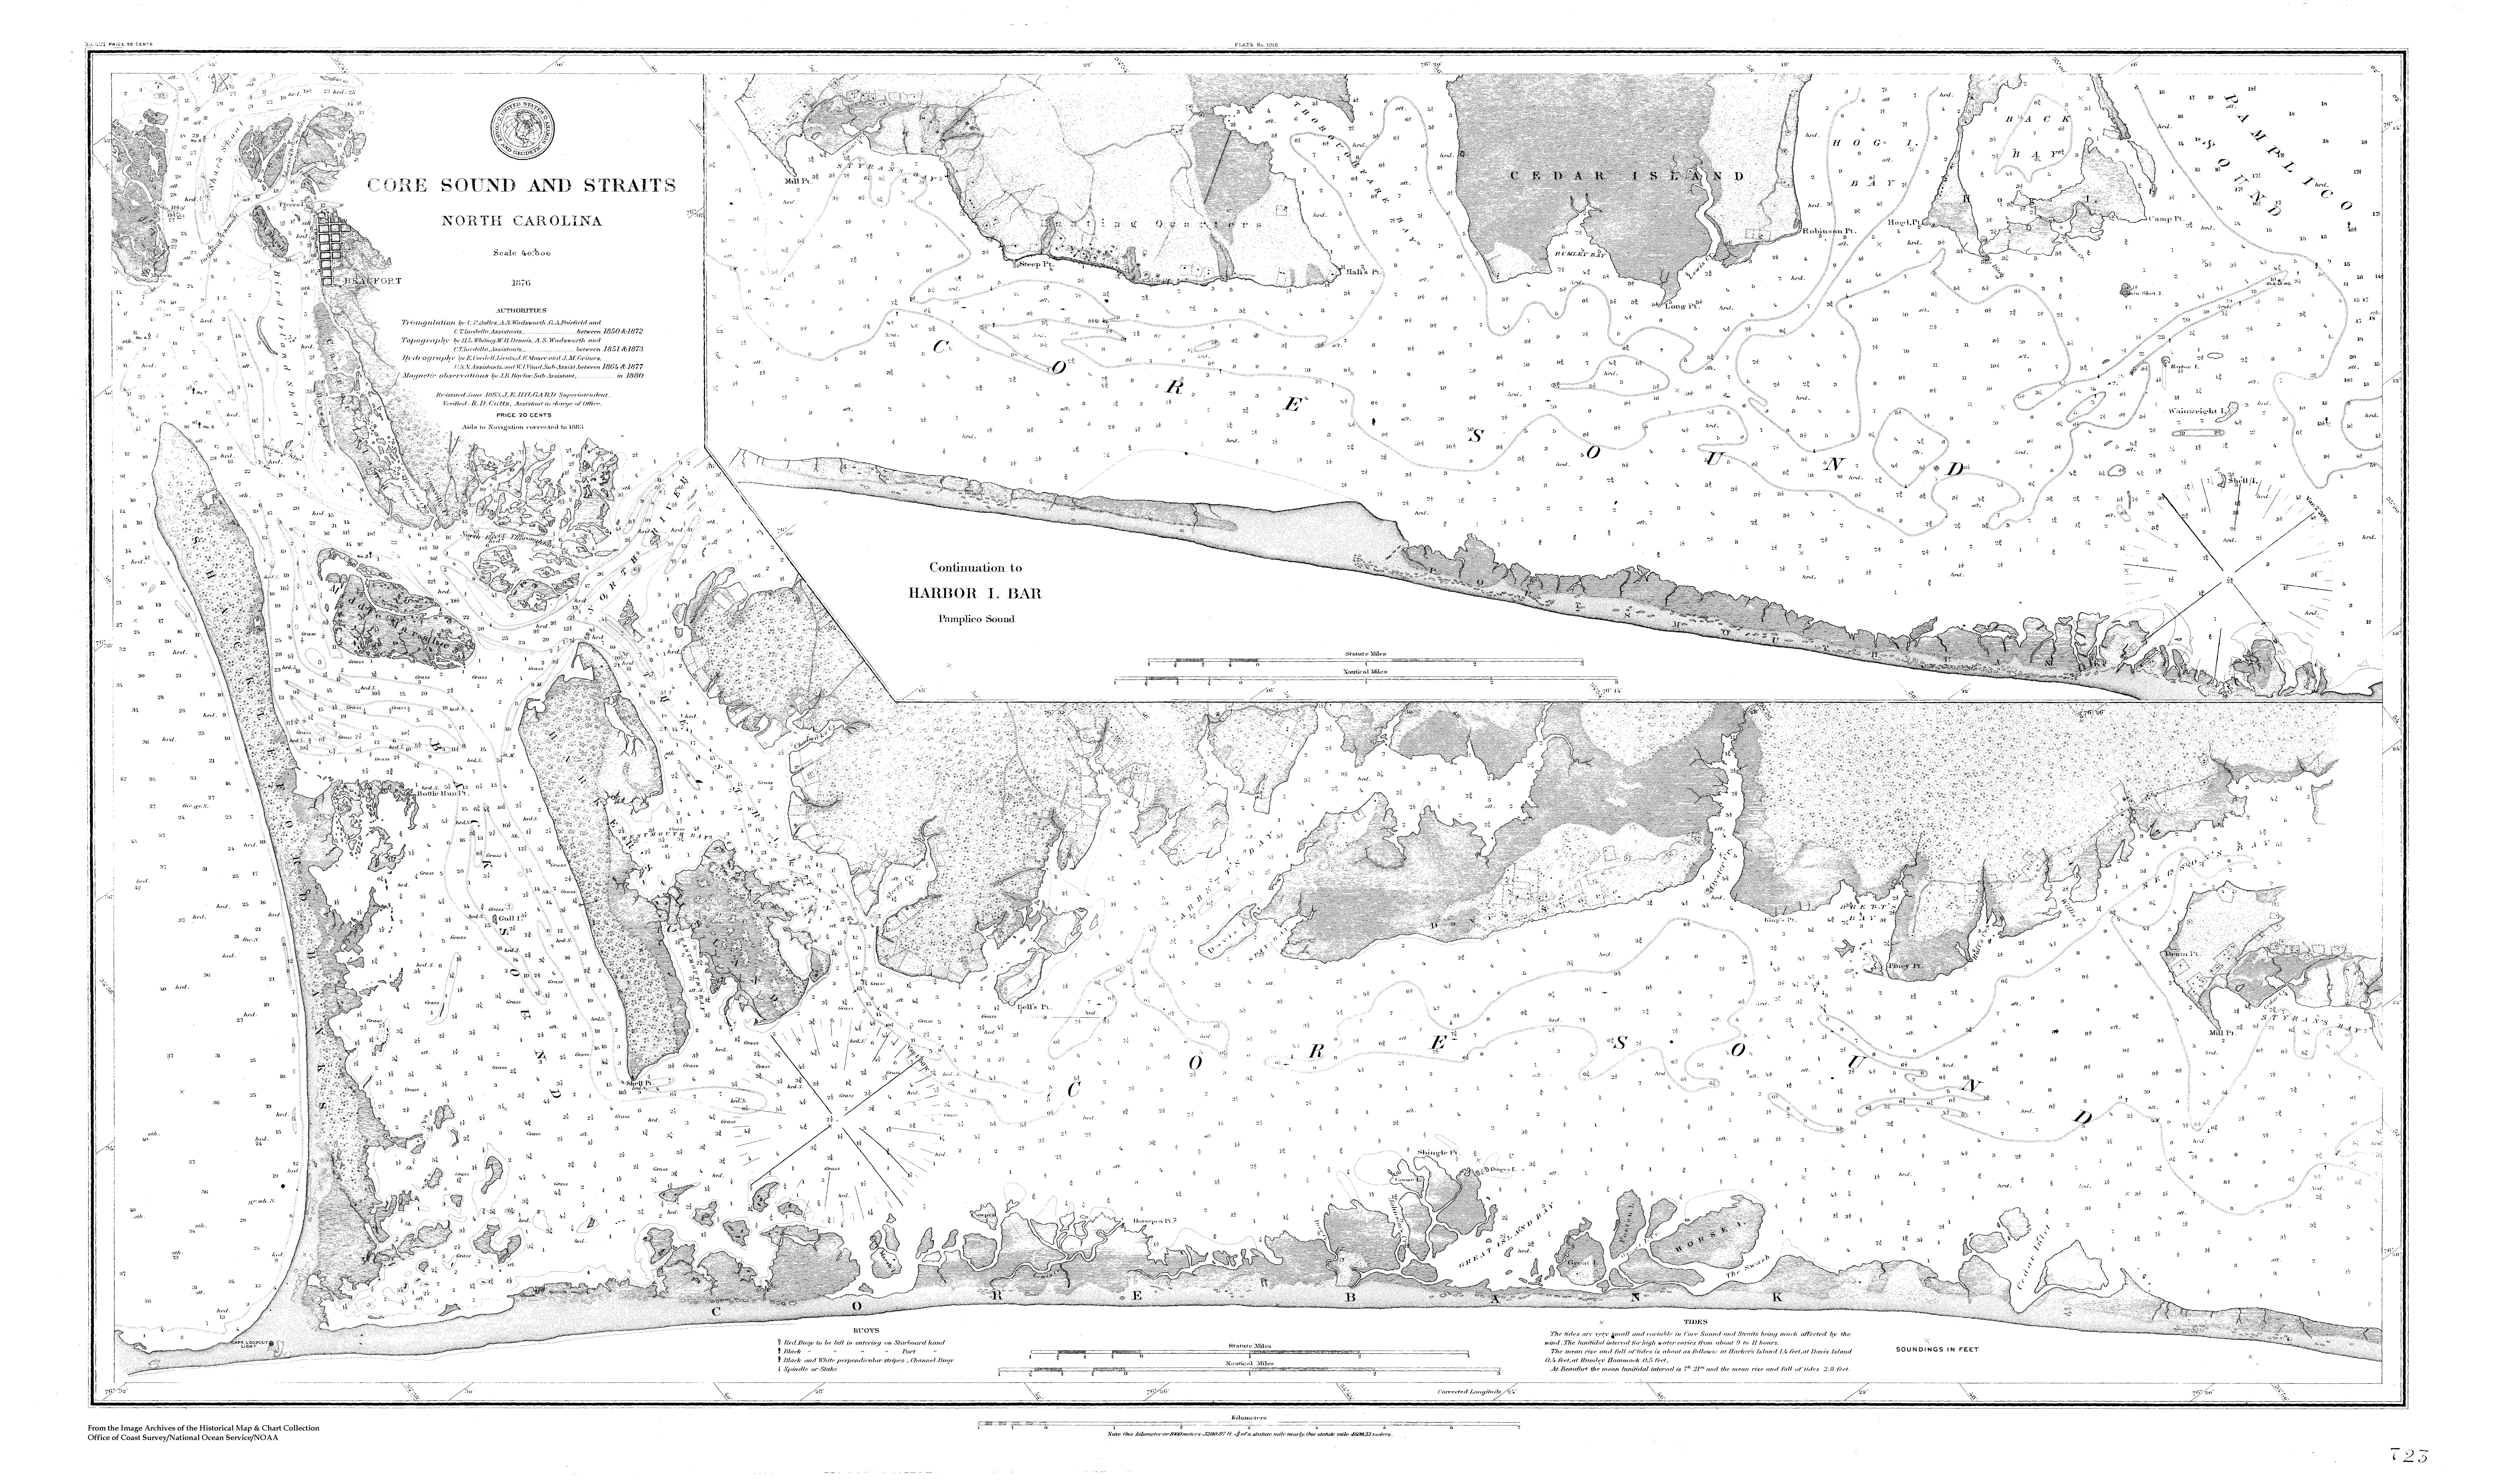 Nautical Charts Harkers Island Pentecostal Holiness Church